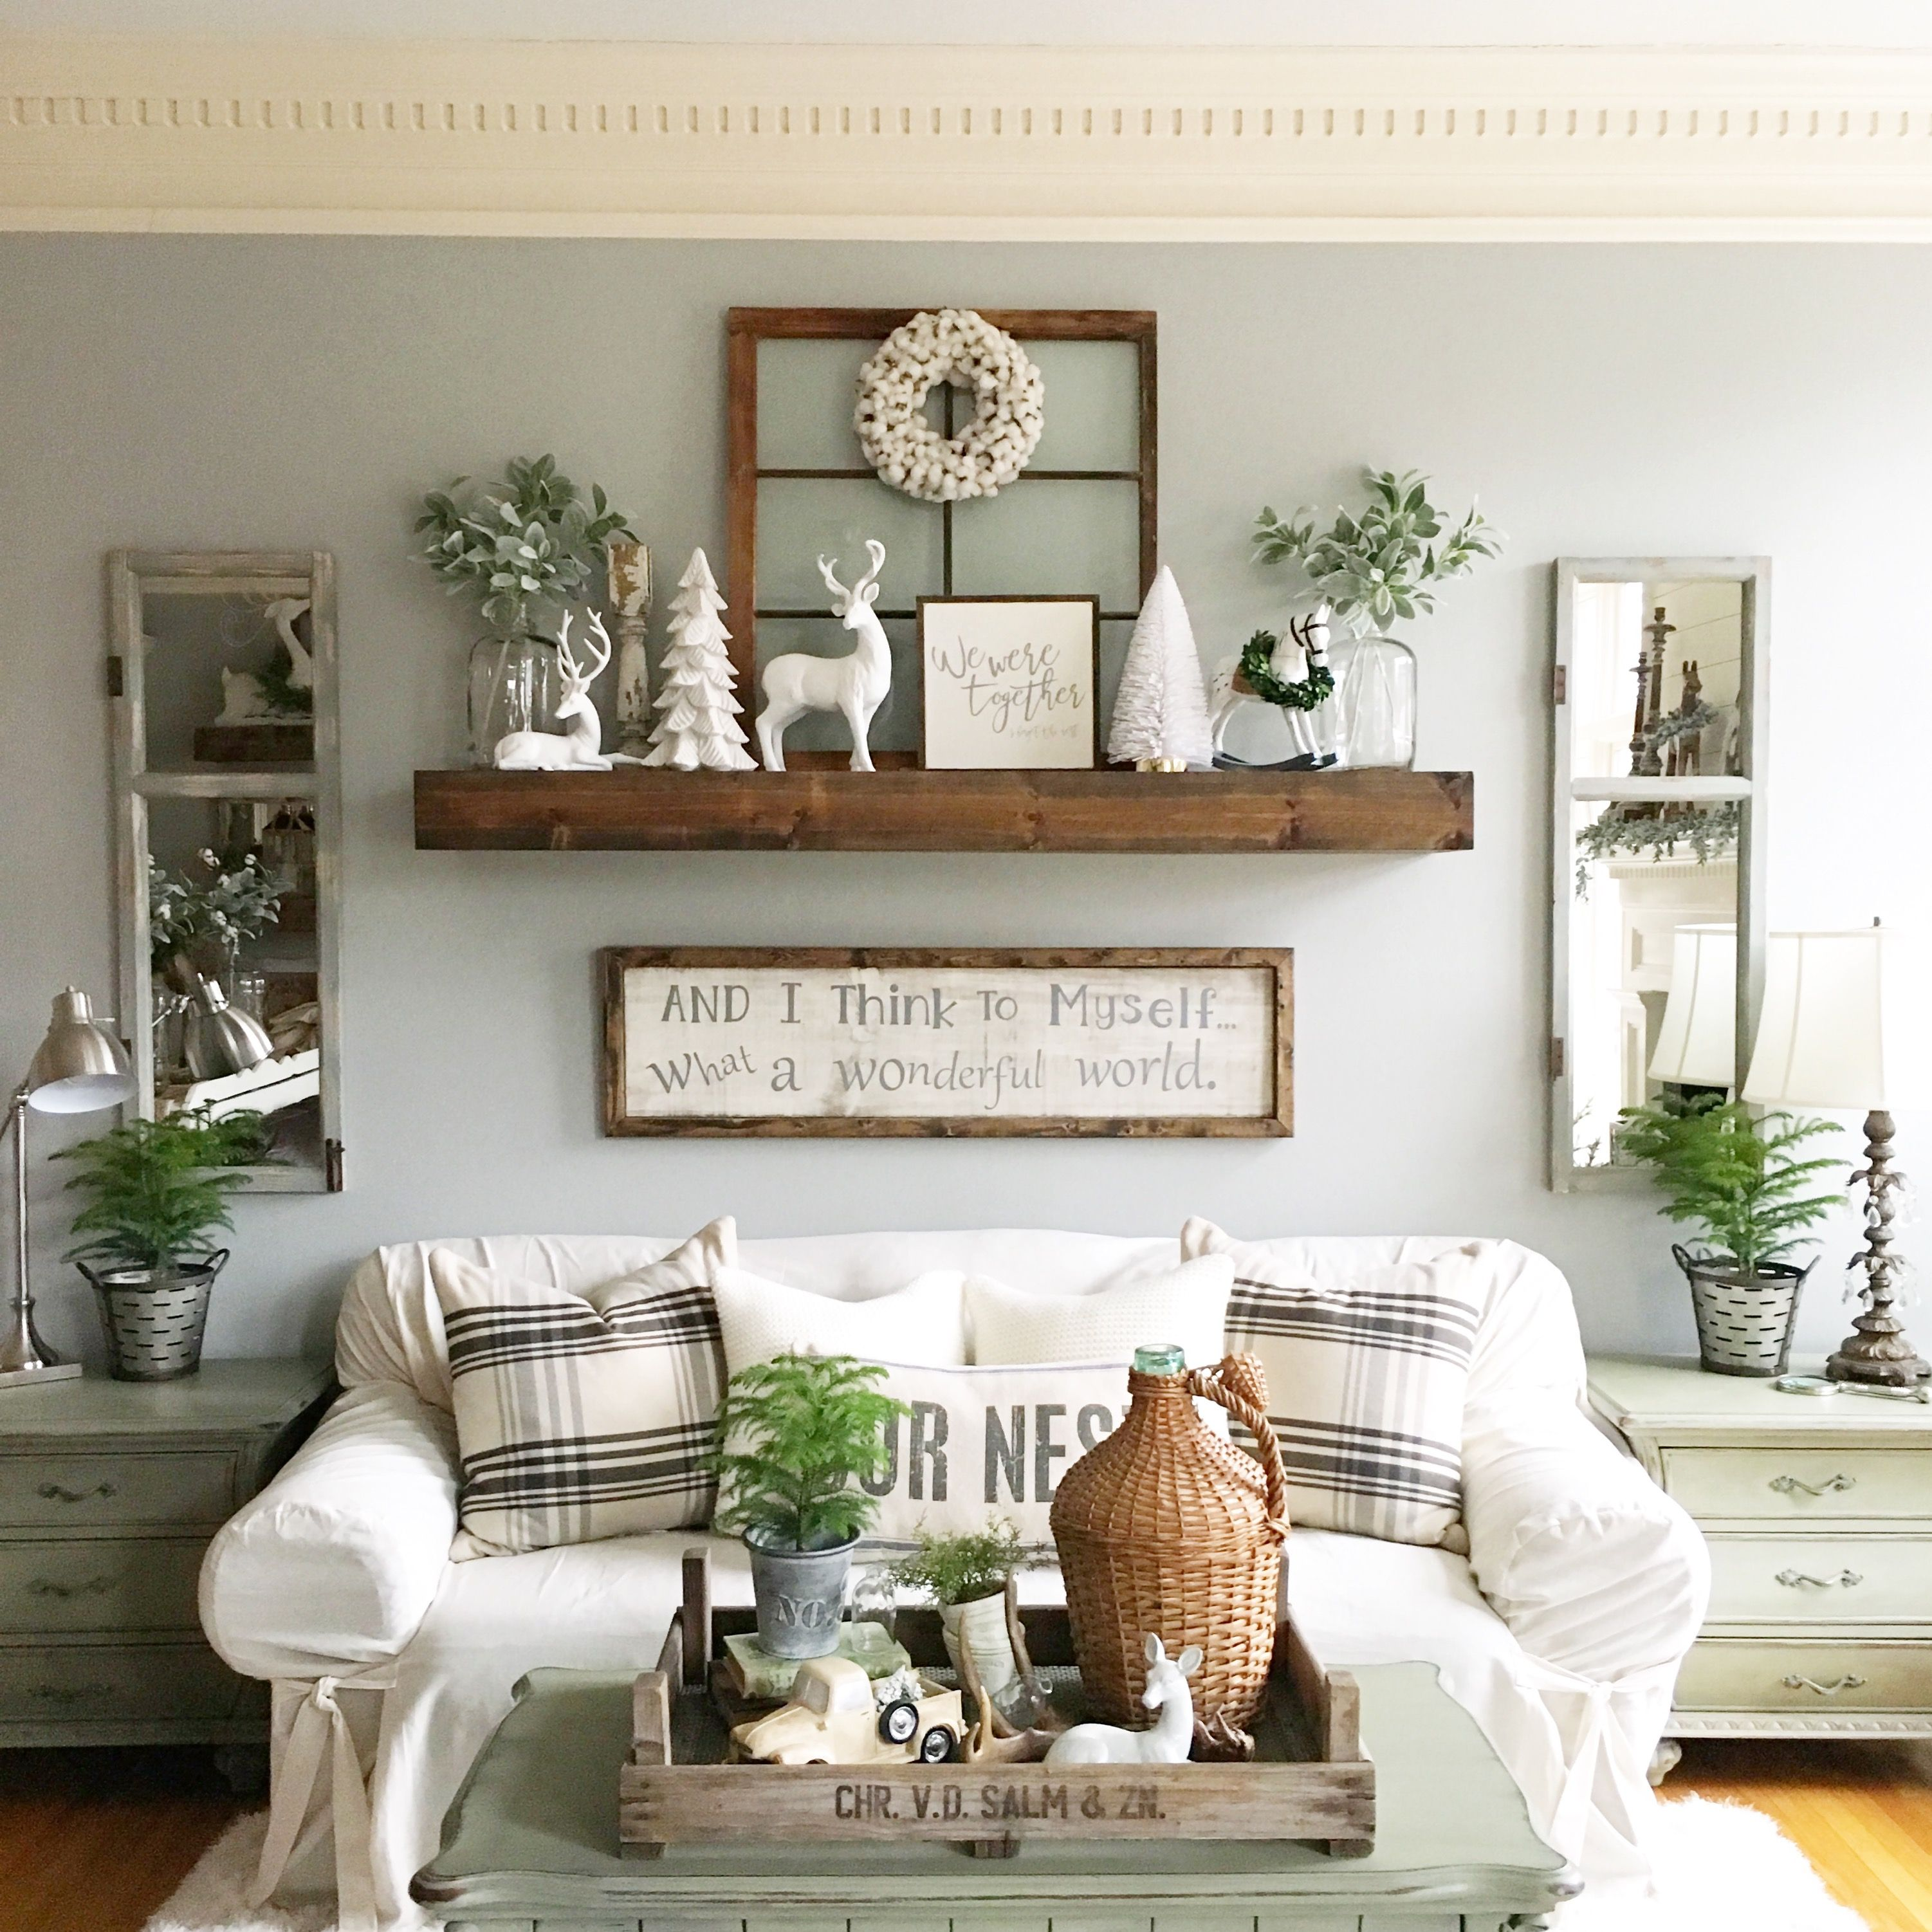 This Diy Shelf Was So Worth Making It's A Favorite Wall Feature Fair Fun Living Room Ideas Inspiration